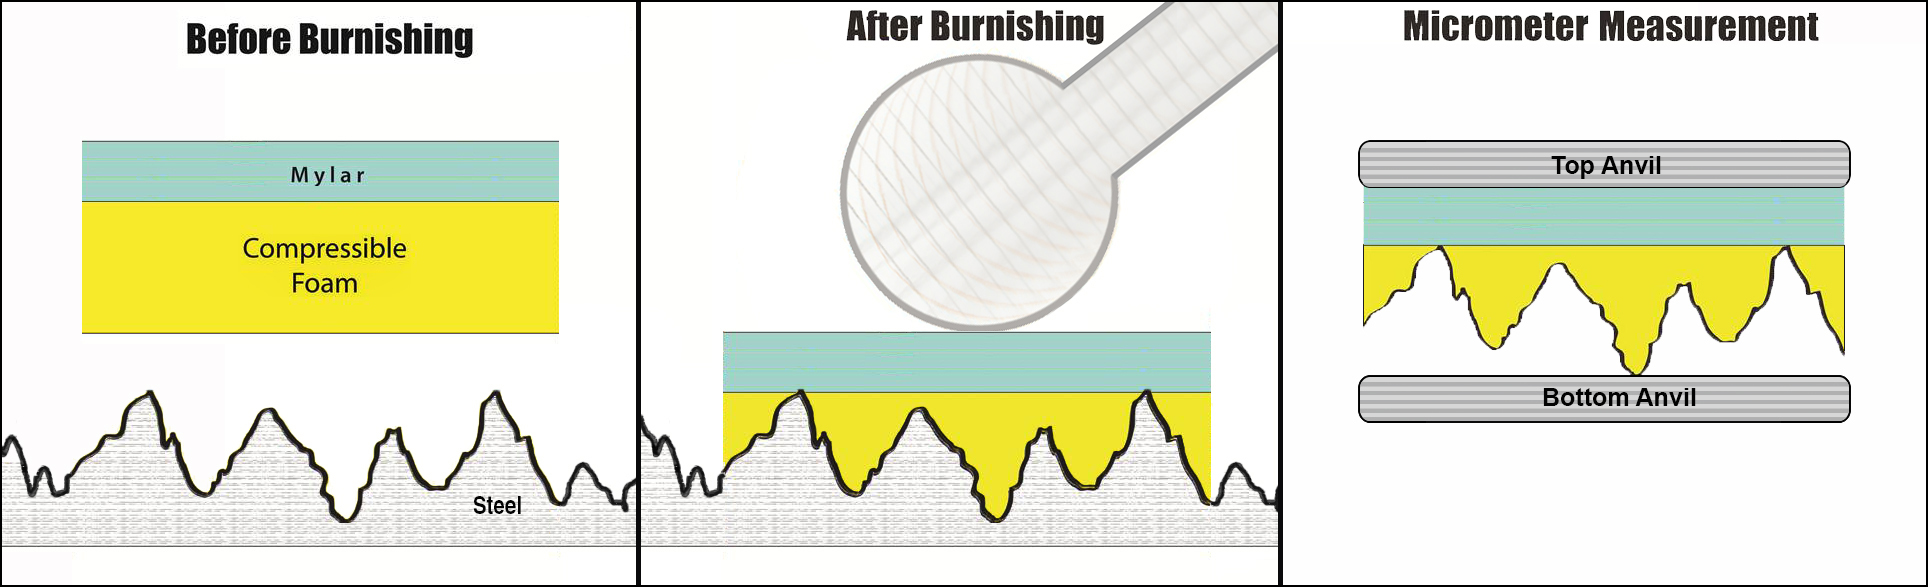 Illustrated Image depicts the process of burnishing a piece of replica tape to measure the blasted surface's surface profile.